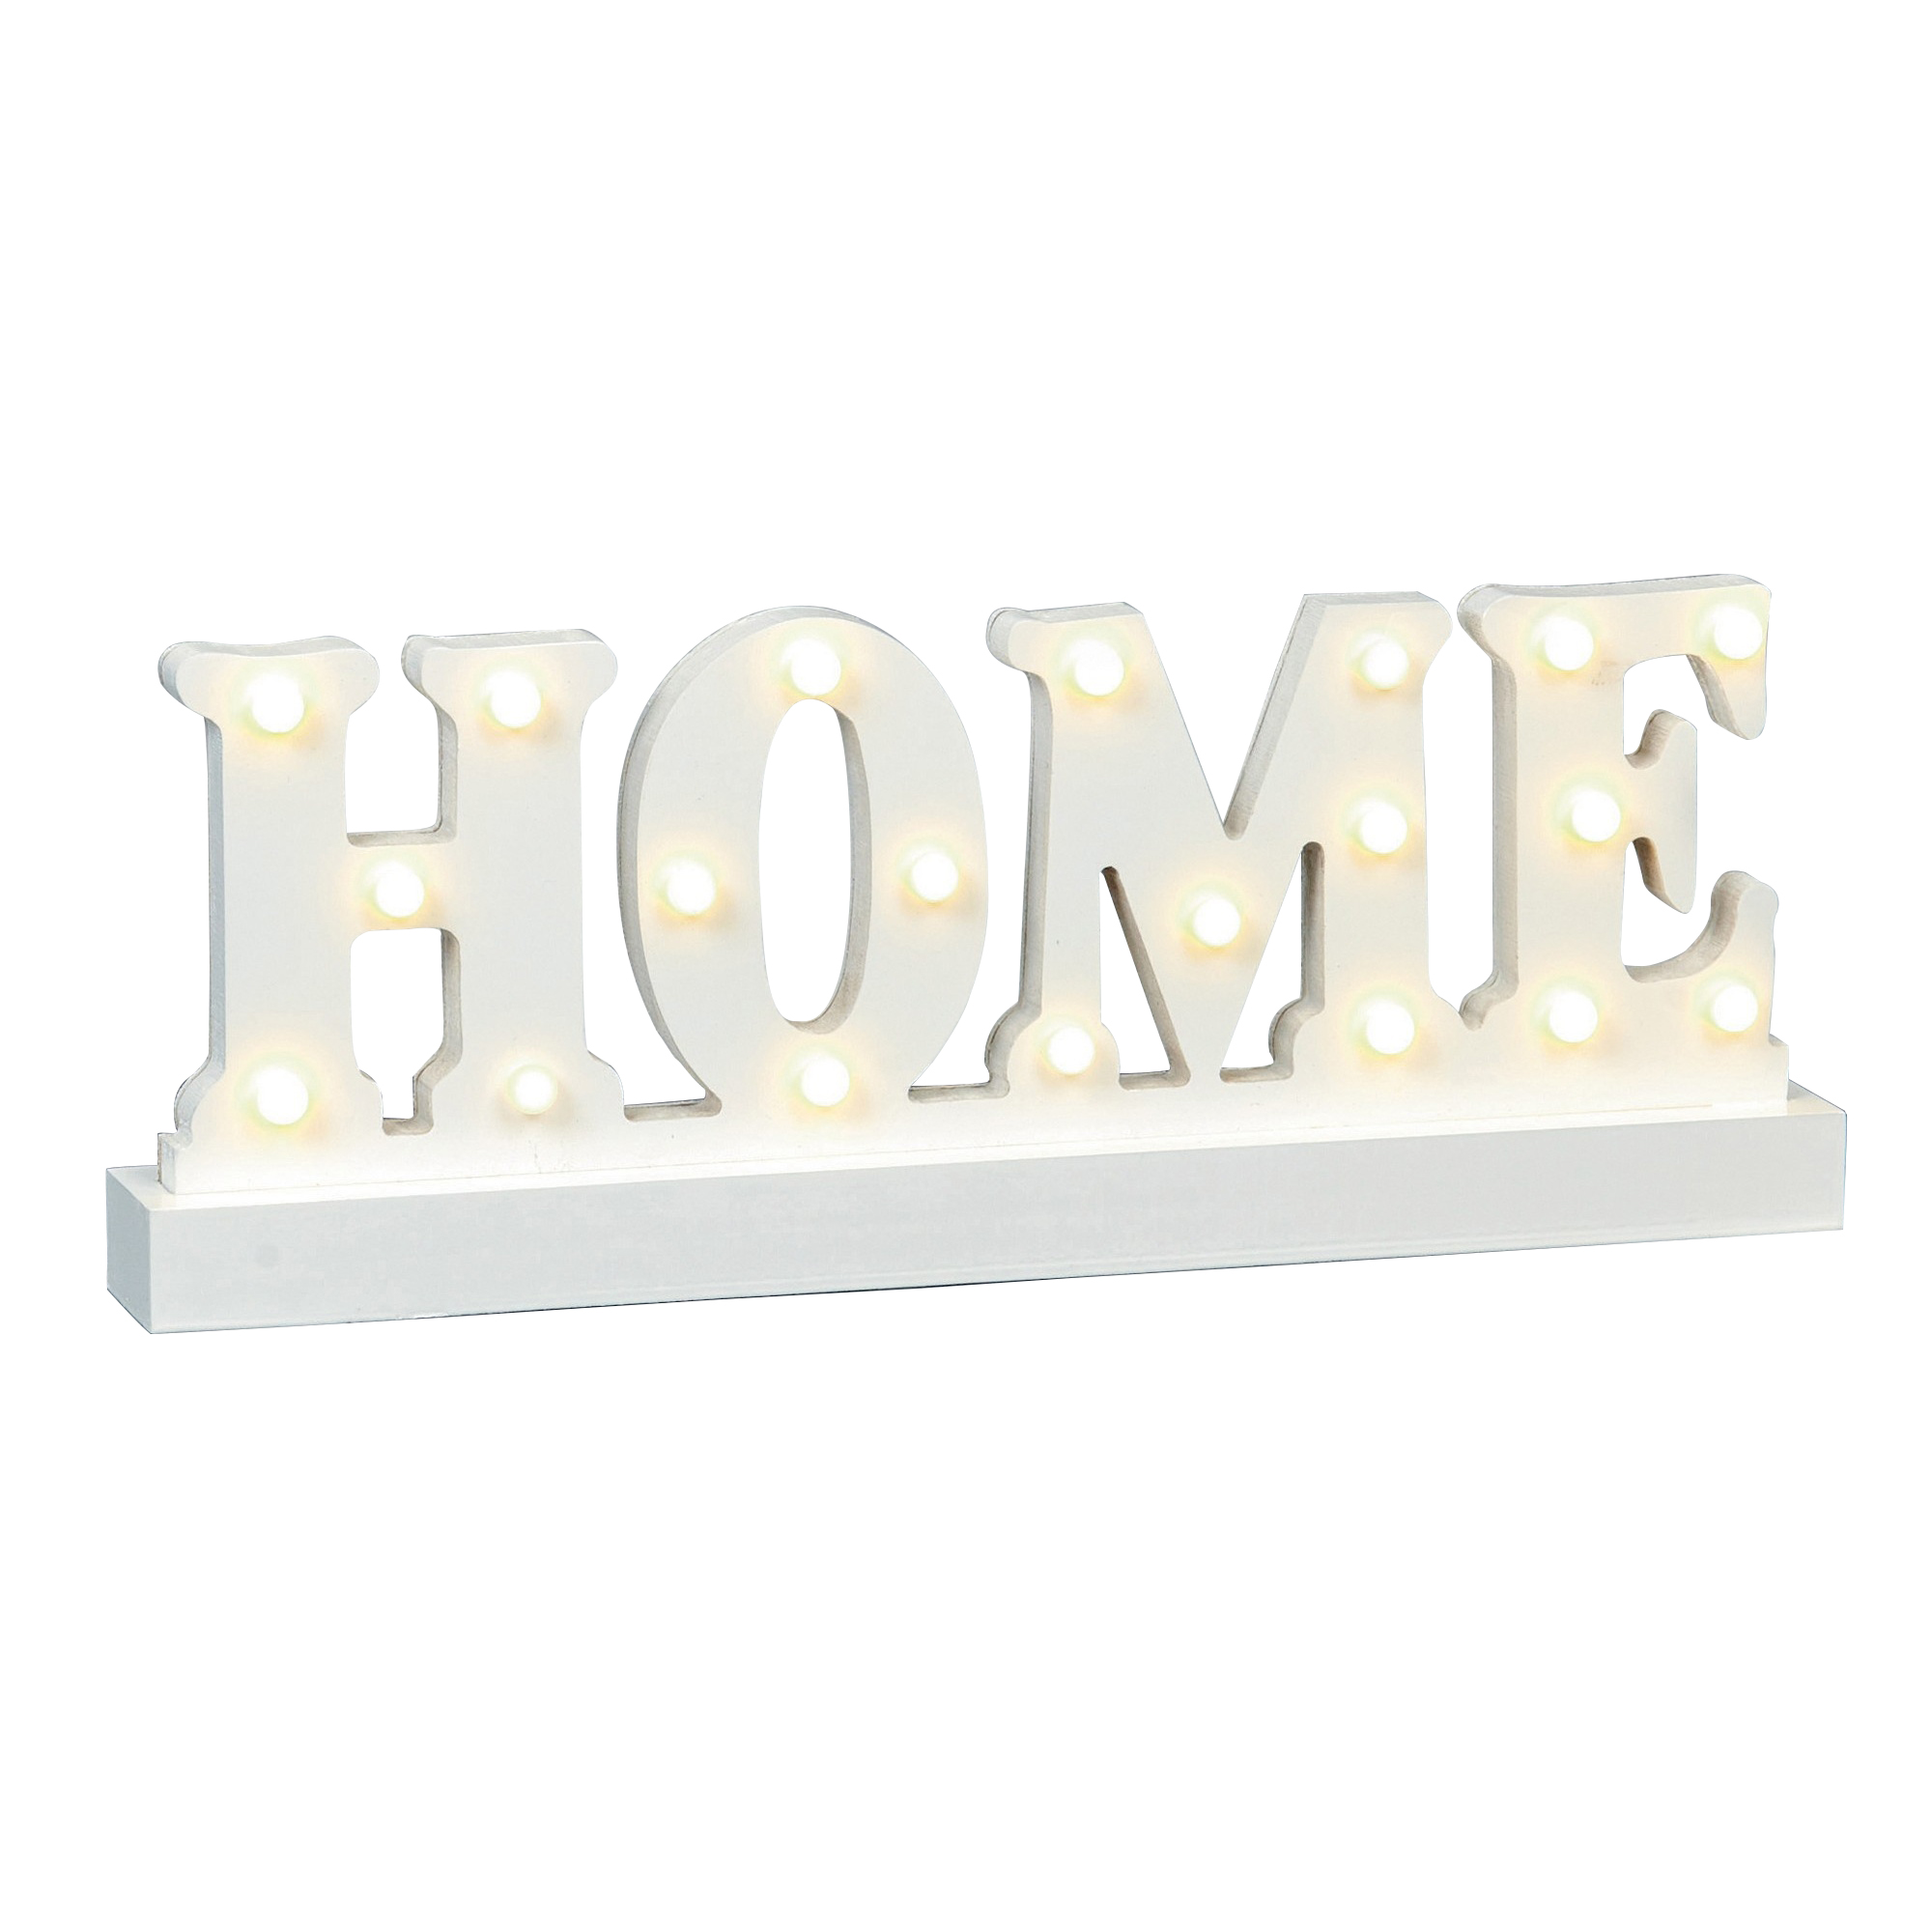 Christmas-Shop-Soprammobile-luminoso-in-legno